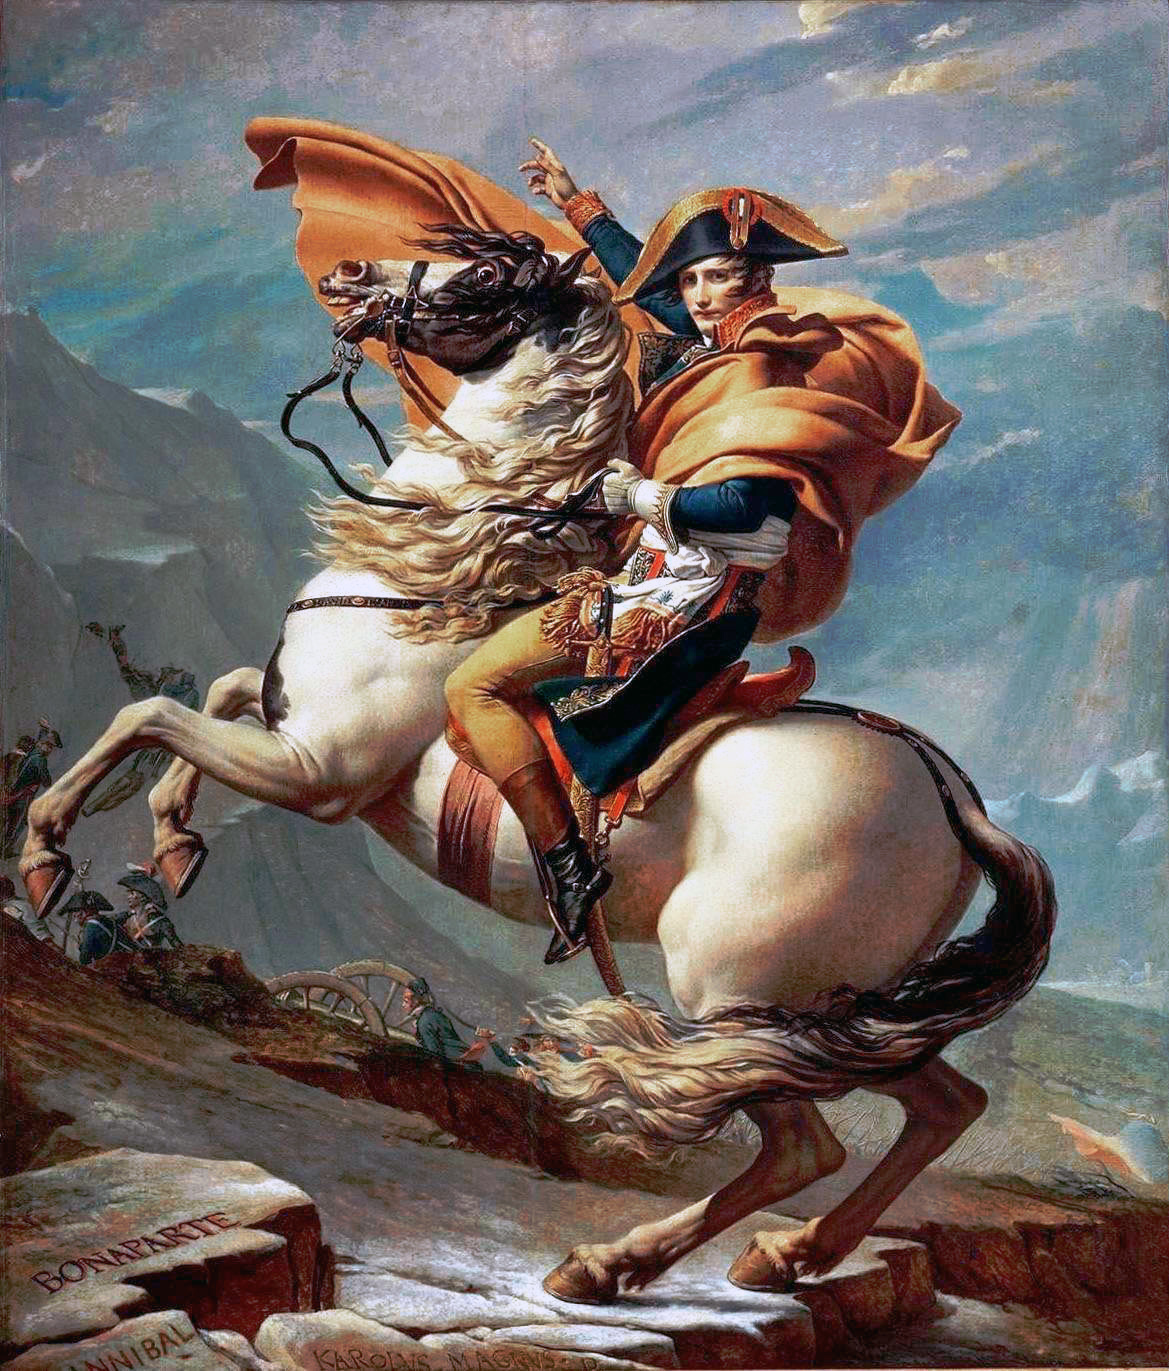 David_-_Napoleon_crossing_the_Alps_-_Malmaison1.jpg